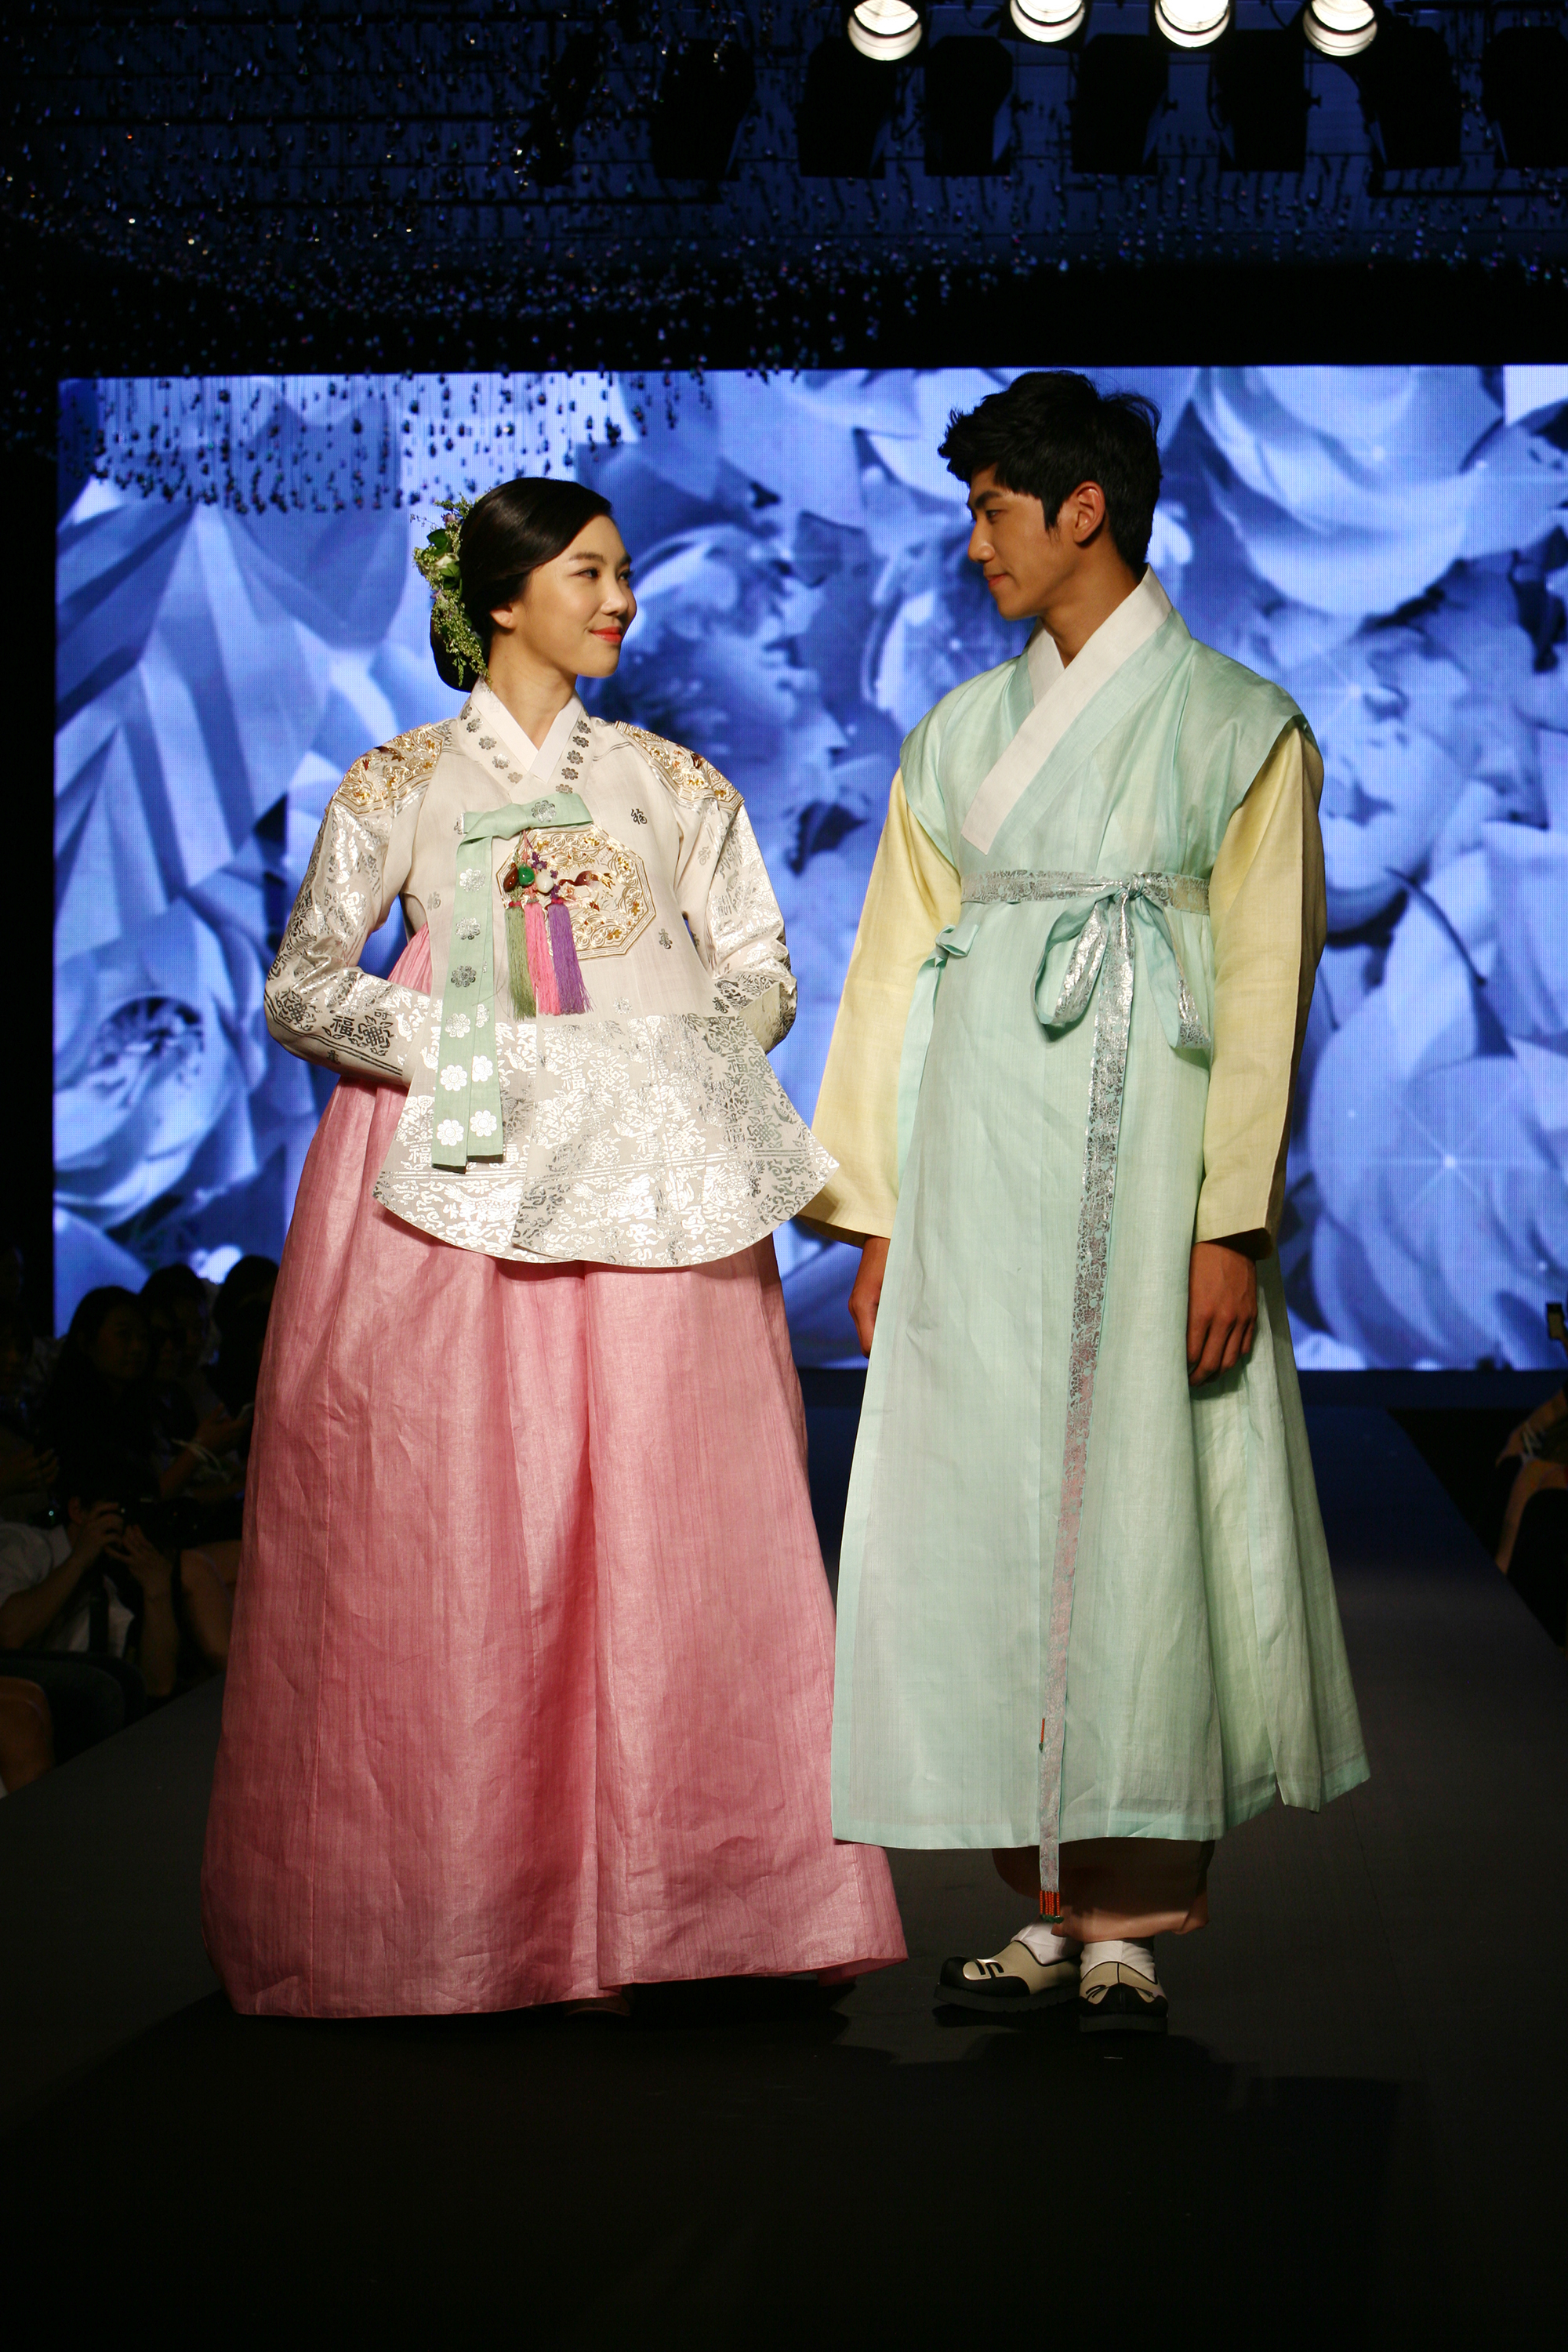 951d0b0a3 How 'hanbok' is influencing biggest fashion names - CNN Style